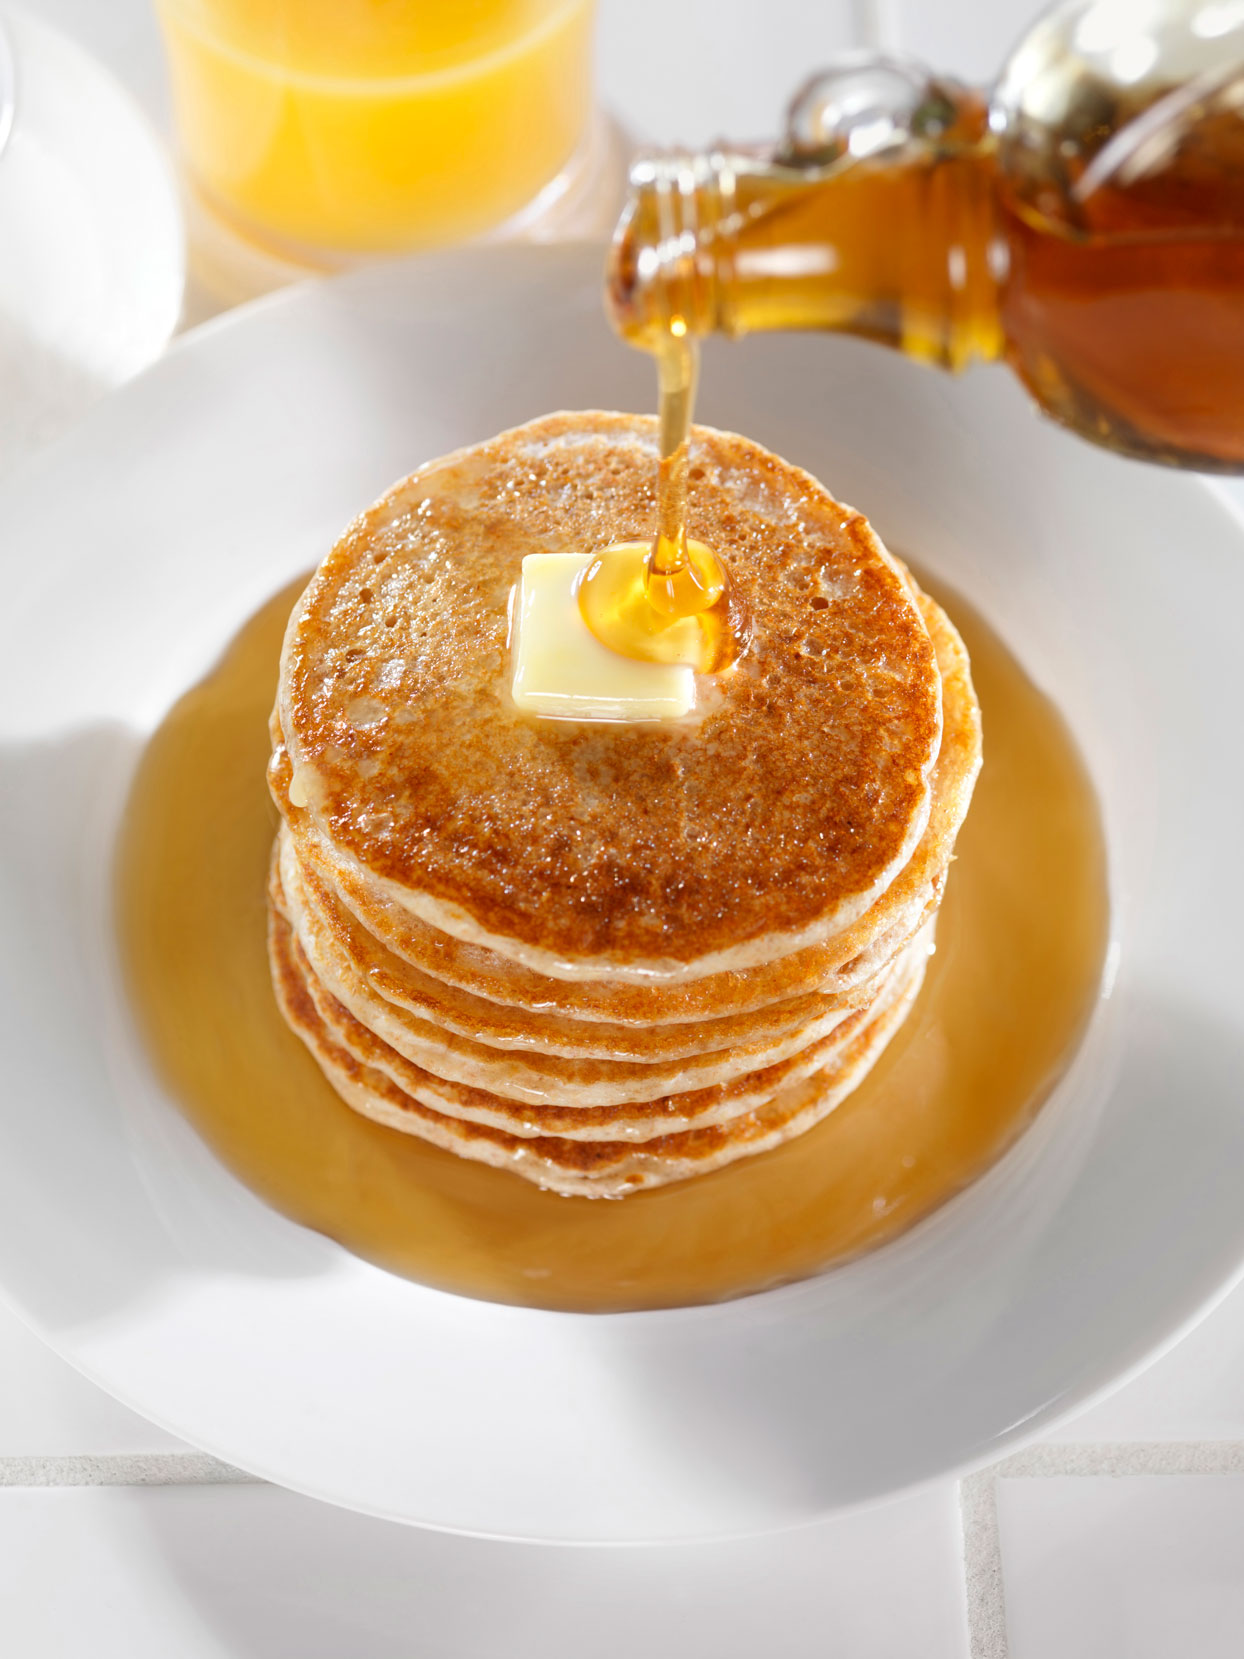 stack of pancakes with butter and maple syrup on a white plate